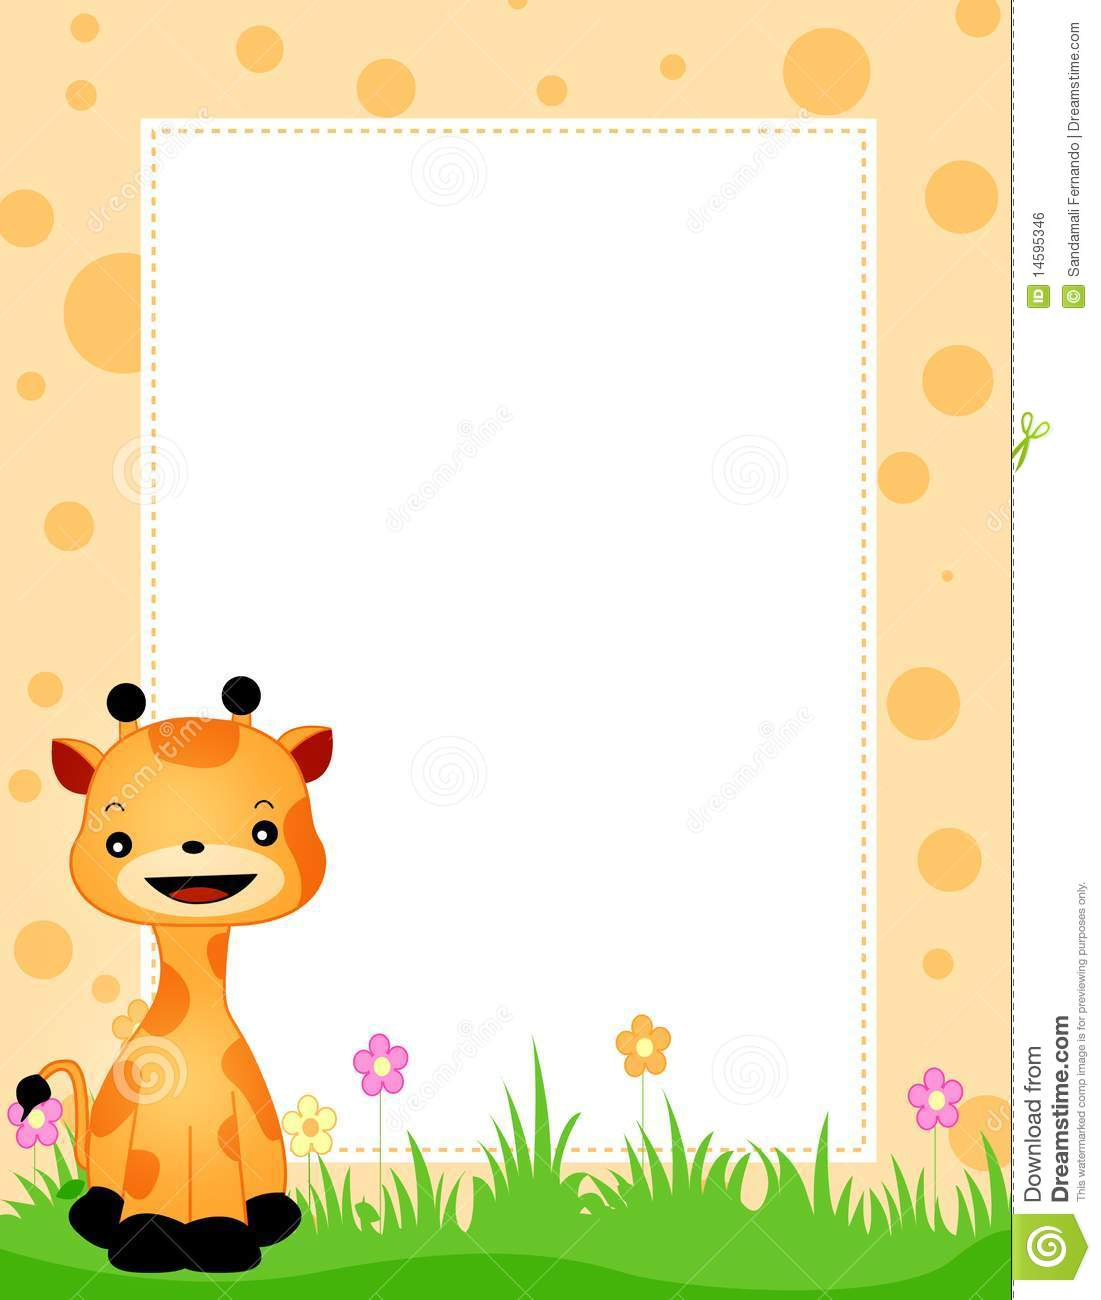 Zoo Animals Clipart Border Images & Pictures - Becuo